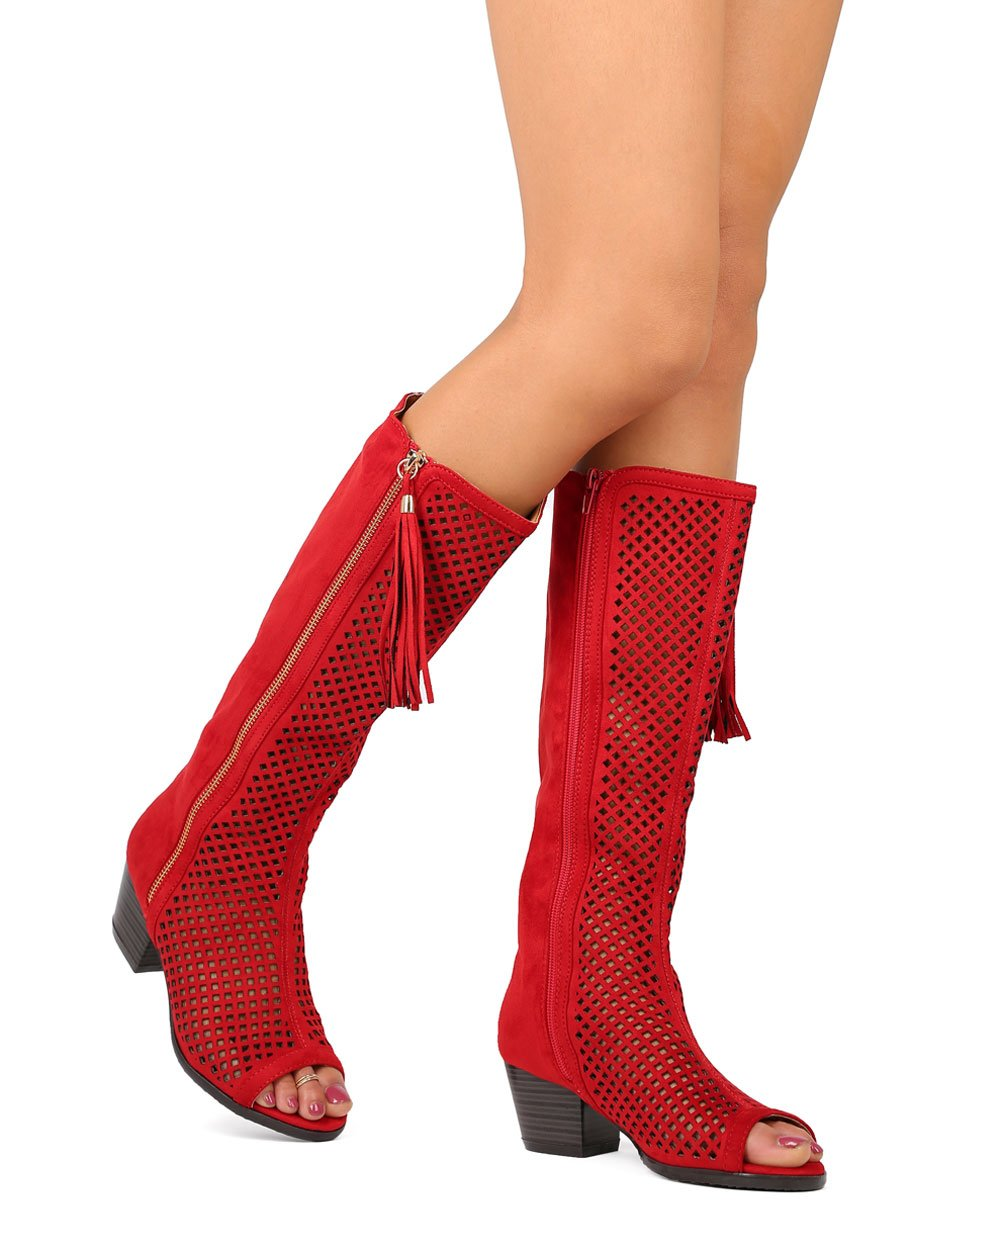 Nature Breeze Women Faux Suede Knee High Peep Toe Perforated Chunky Heel Boot FA67 - Red (Size: 5.5)